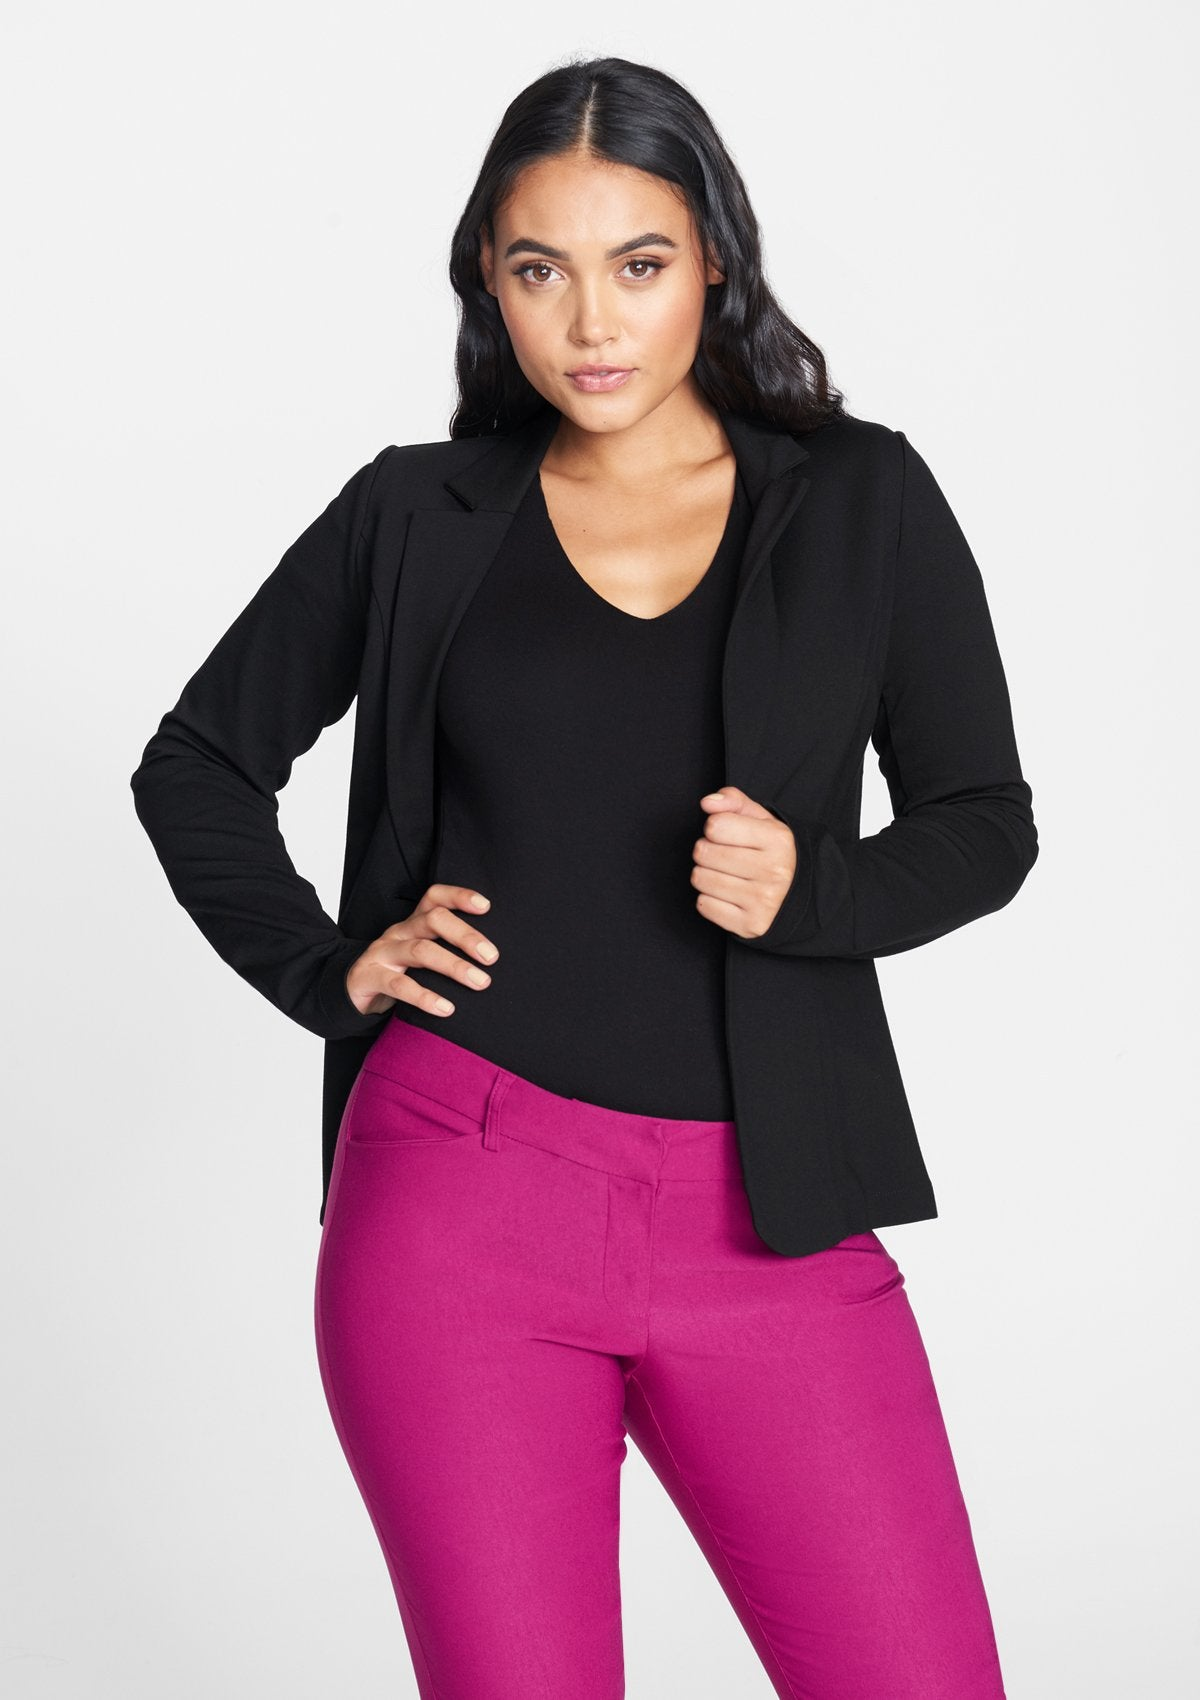 Alloy Apparel Tall Knit Blazer for Women in Black Size L   Rayon